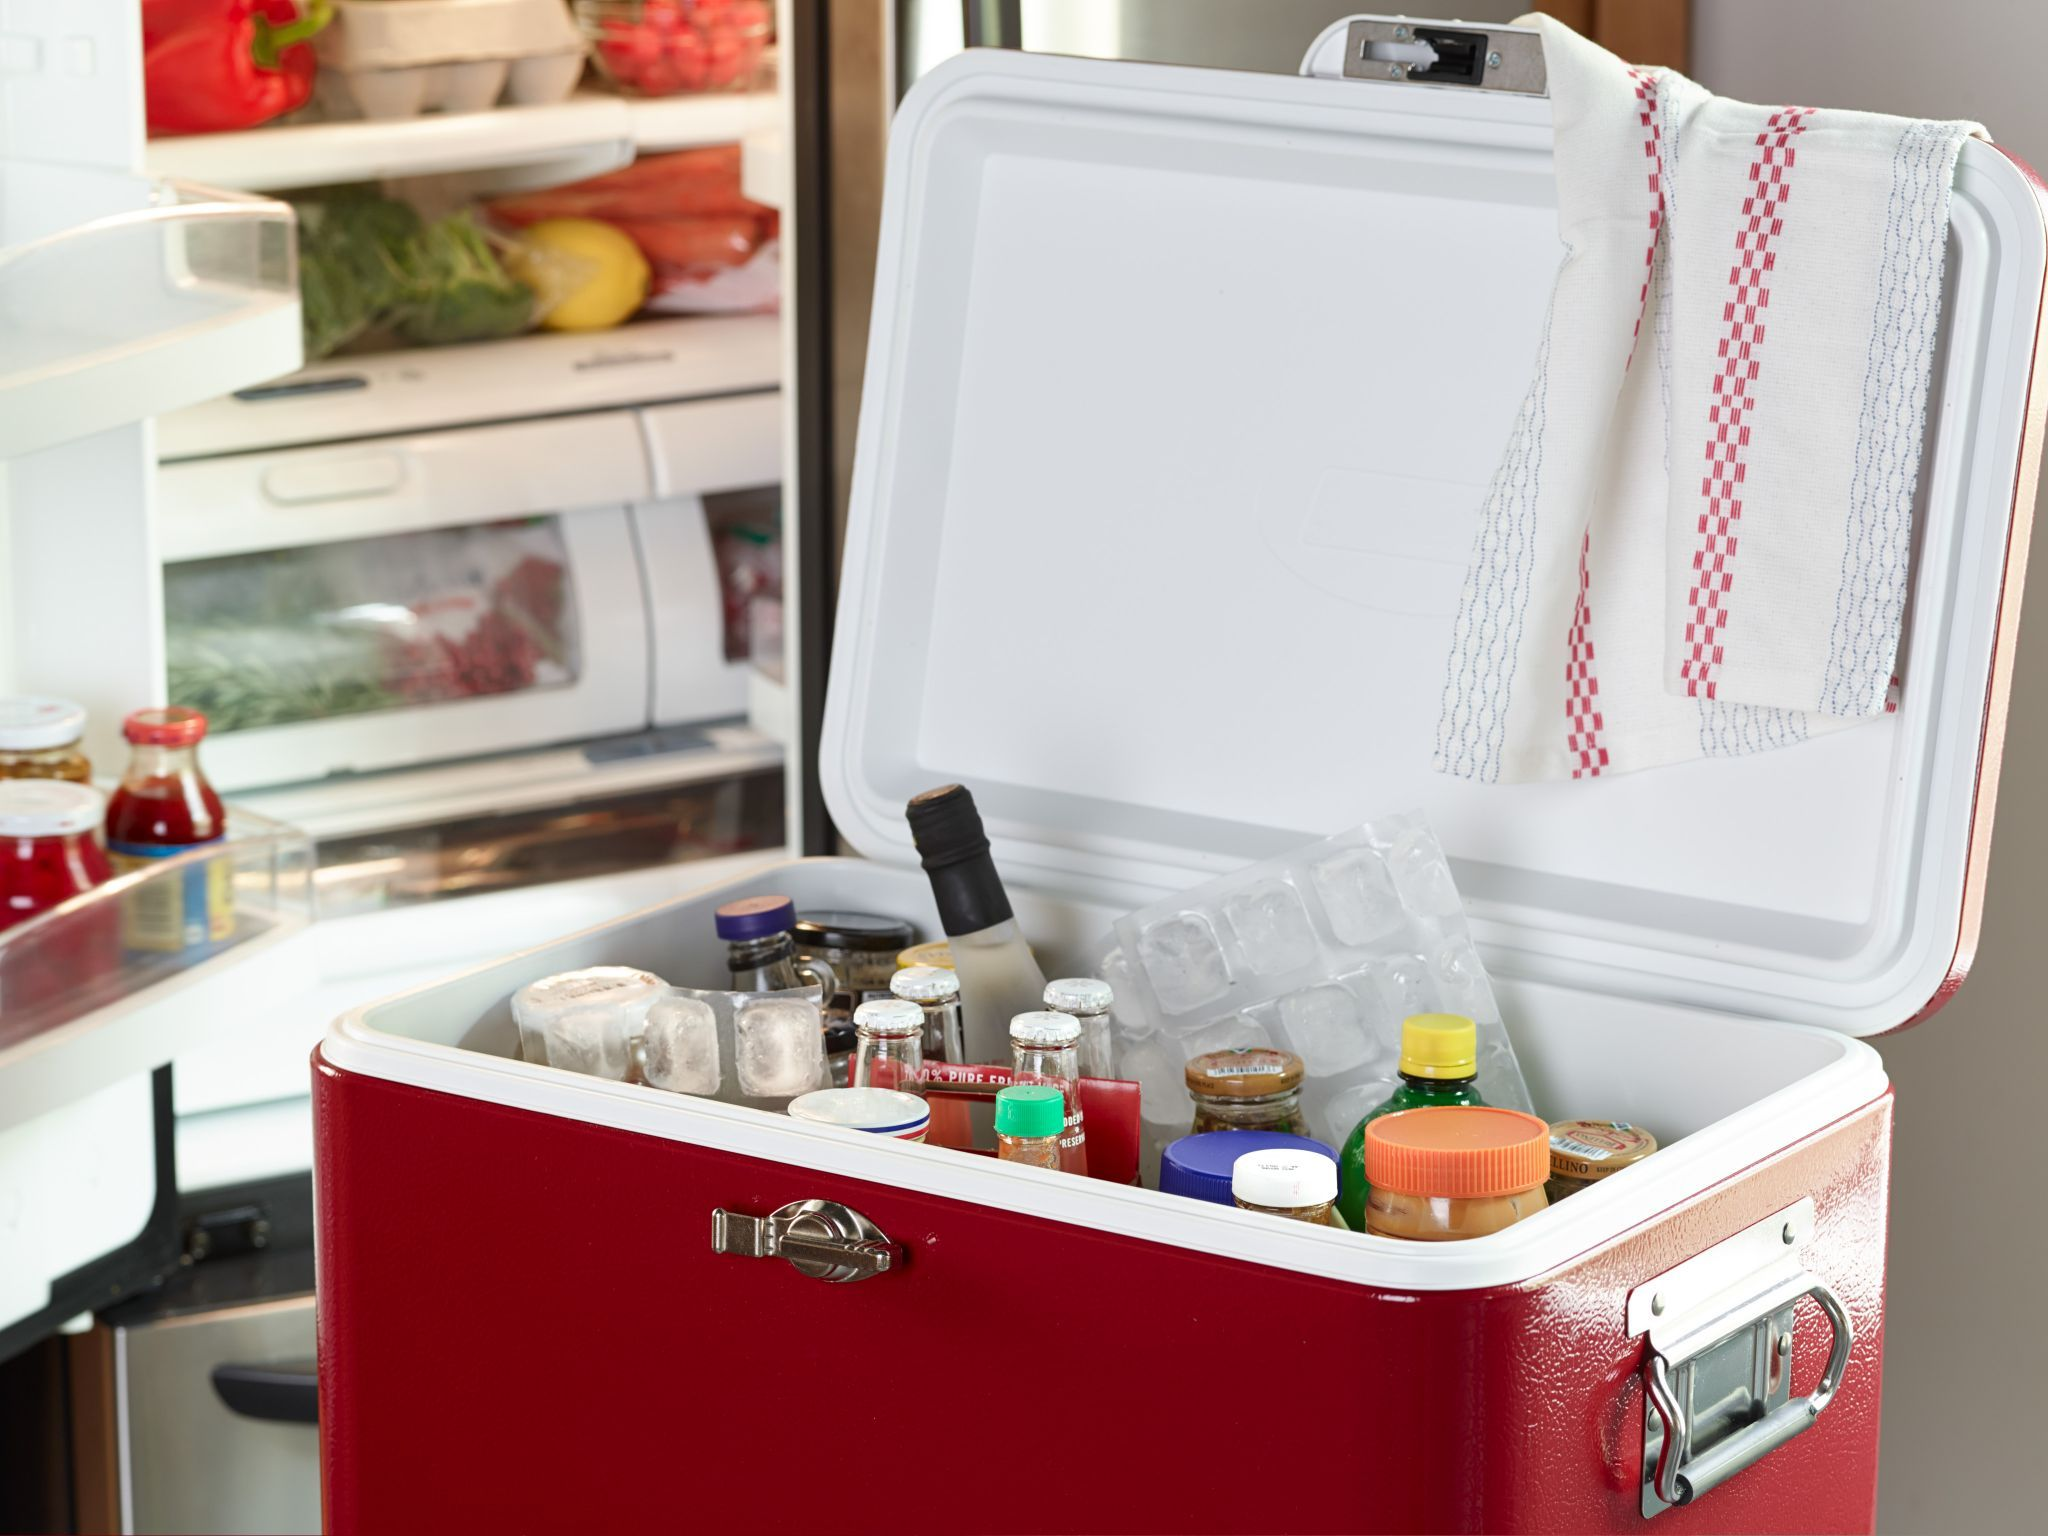 Ice Chest as a Fridge : In the lead-up to the big feast, refrigerator real estate is precious. Clear out those space-hogging bottles of dressing and pickles, and stow them in the garage in a cooler filled with ice packs. Other genius plays with this wonder box: Use it to brine your turkey overnight (make sure to add plenty of ice). Or treat it like a warming drawer